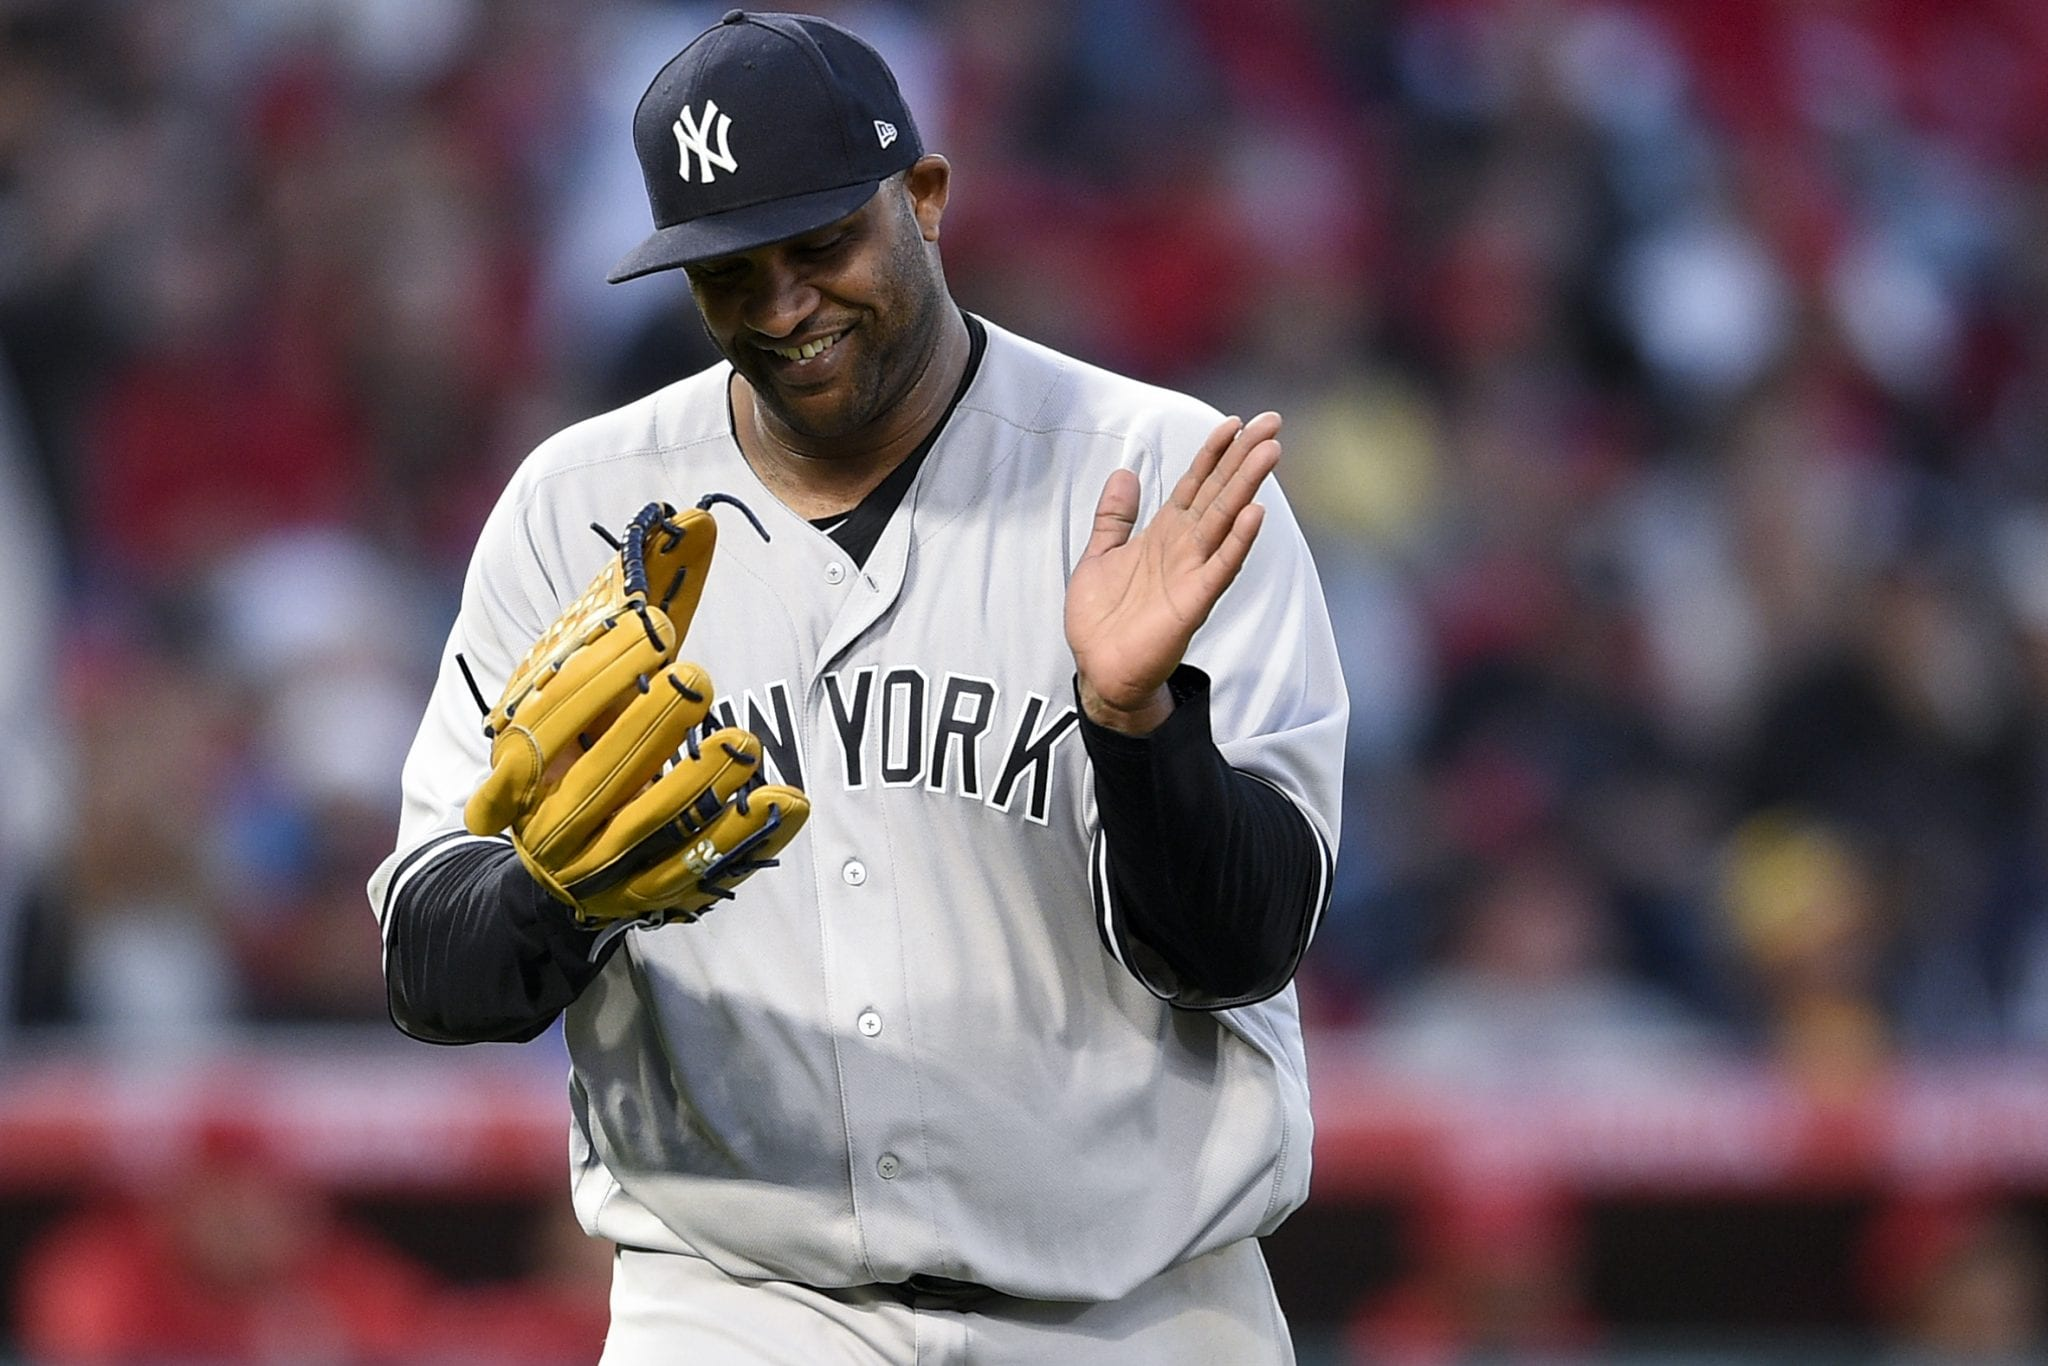 New York Yankees, Yankees, CC Sabathia